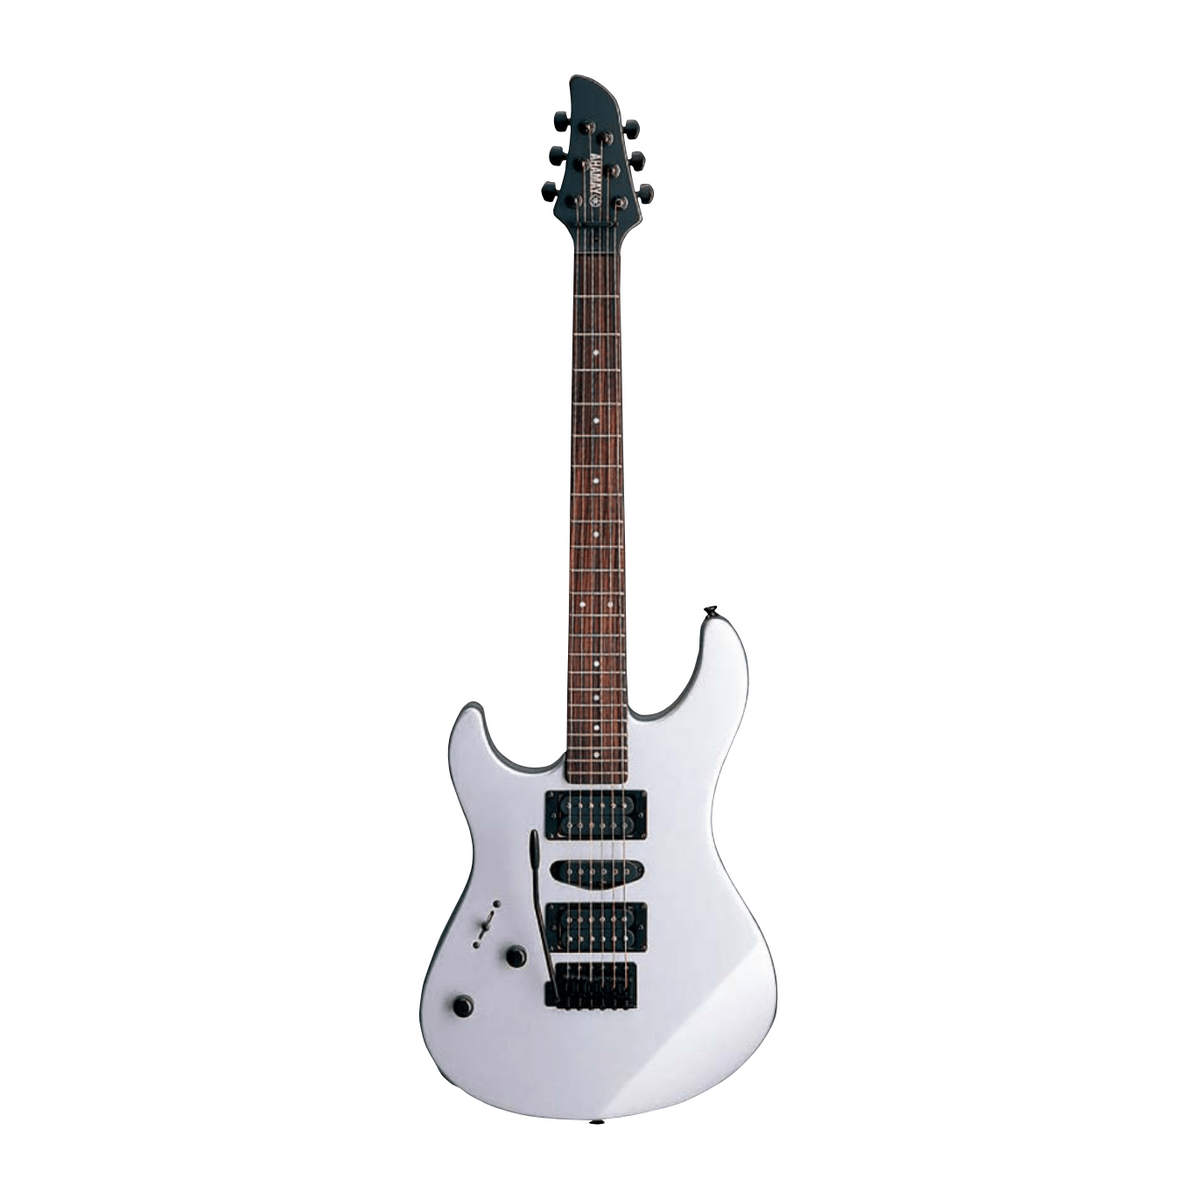 Yamaha RGX121ZL FS Left-Handed Electric Guitar - (Flat Silver/Black)